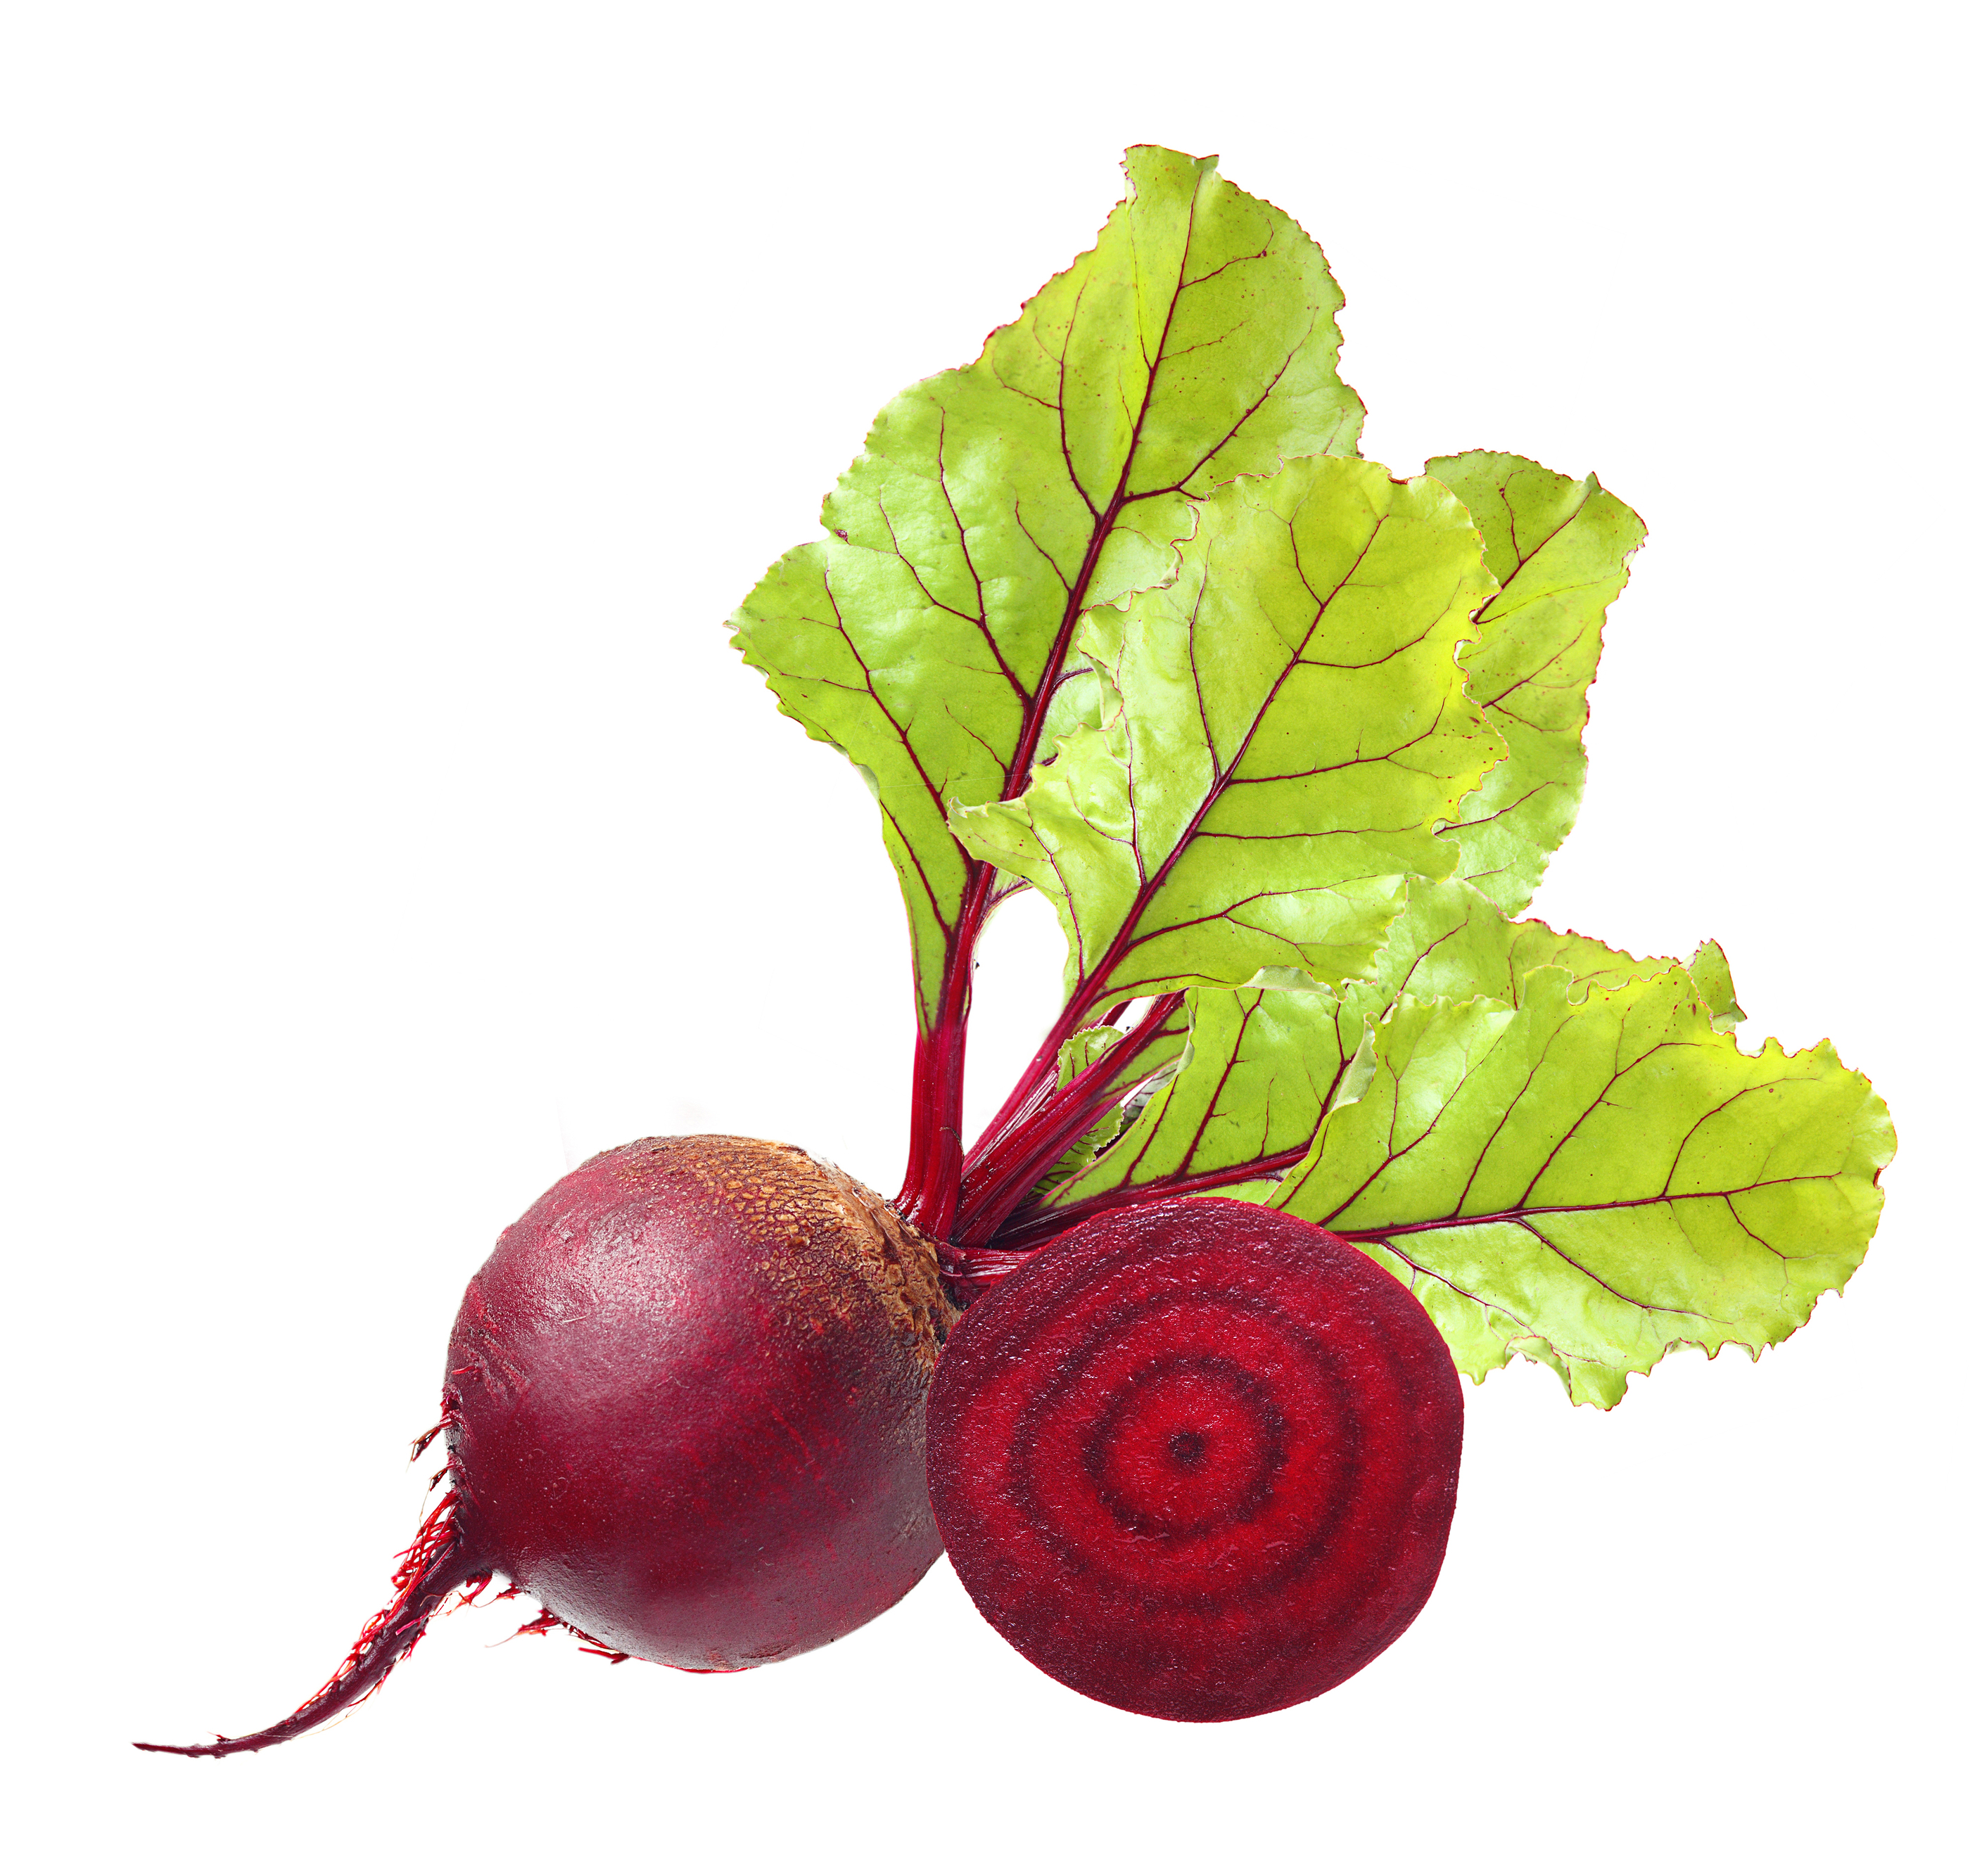 Beetroot juice improves intermittent exercise and ...